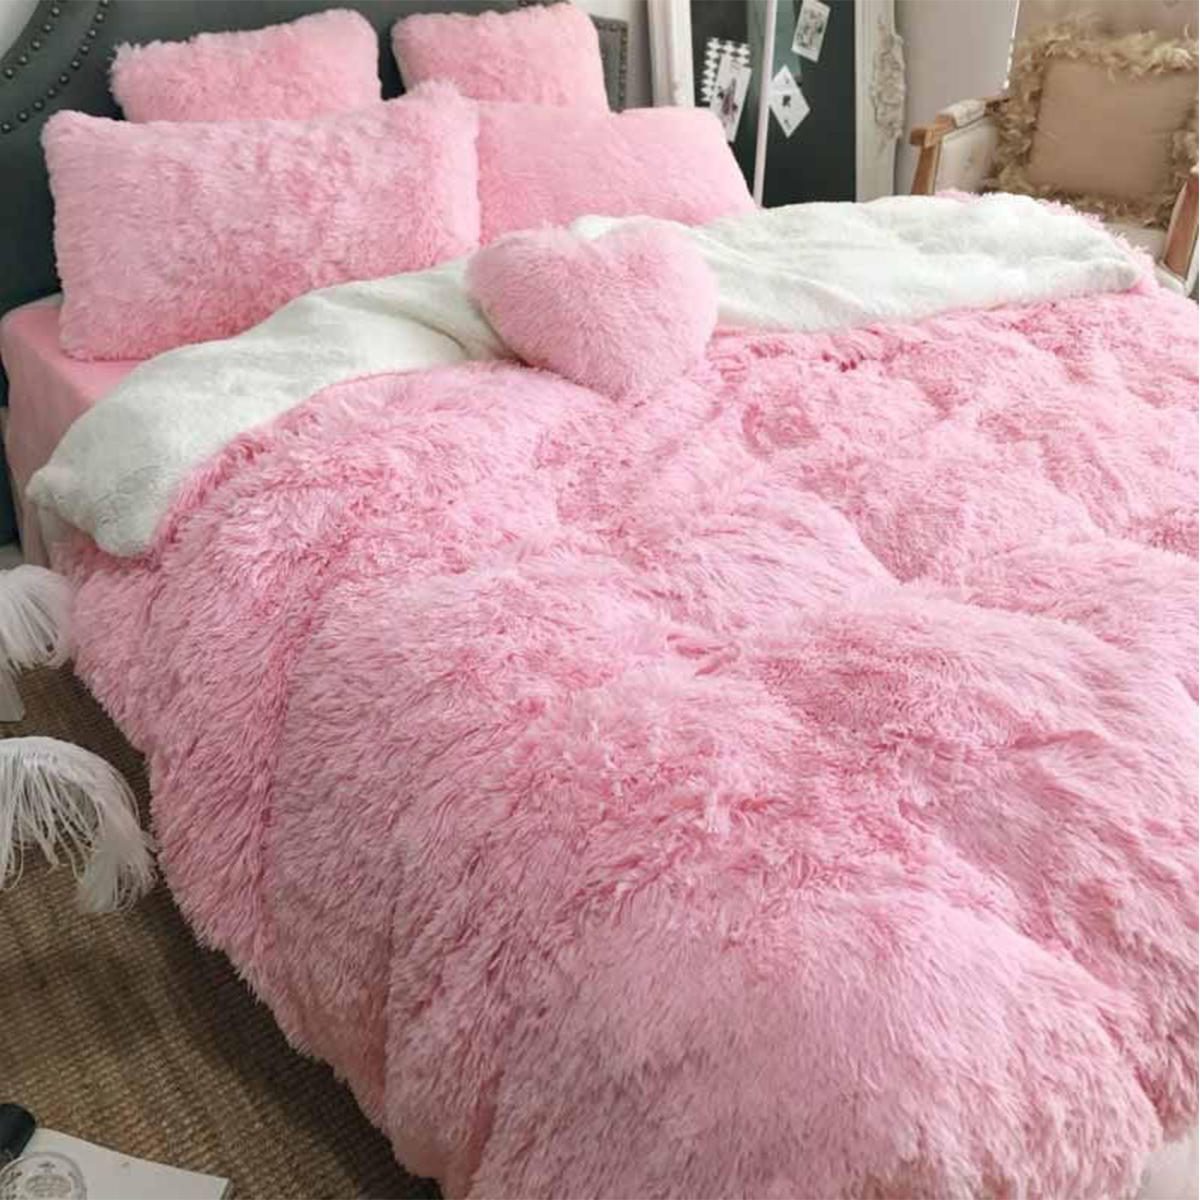 Large Soft Warm Shaggy Double Sized Fluffy Plush Blanket Throw Sofa Blankets Bed Blanket Bedding Accessories - 12